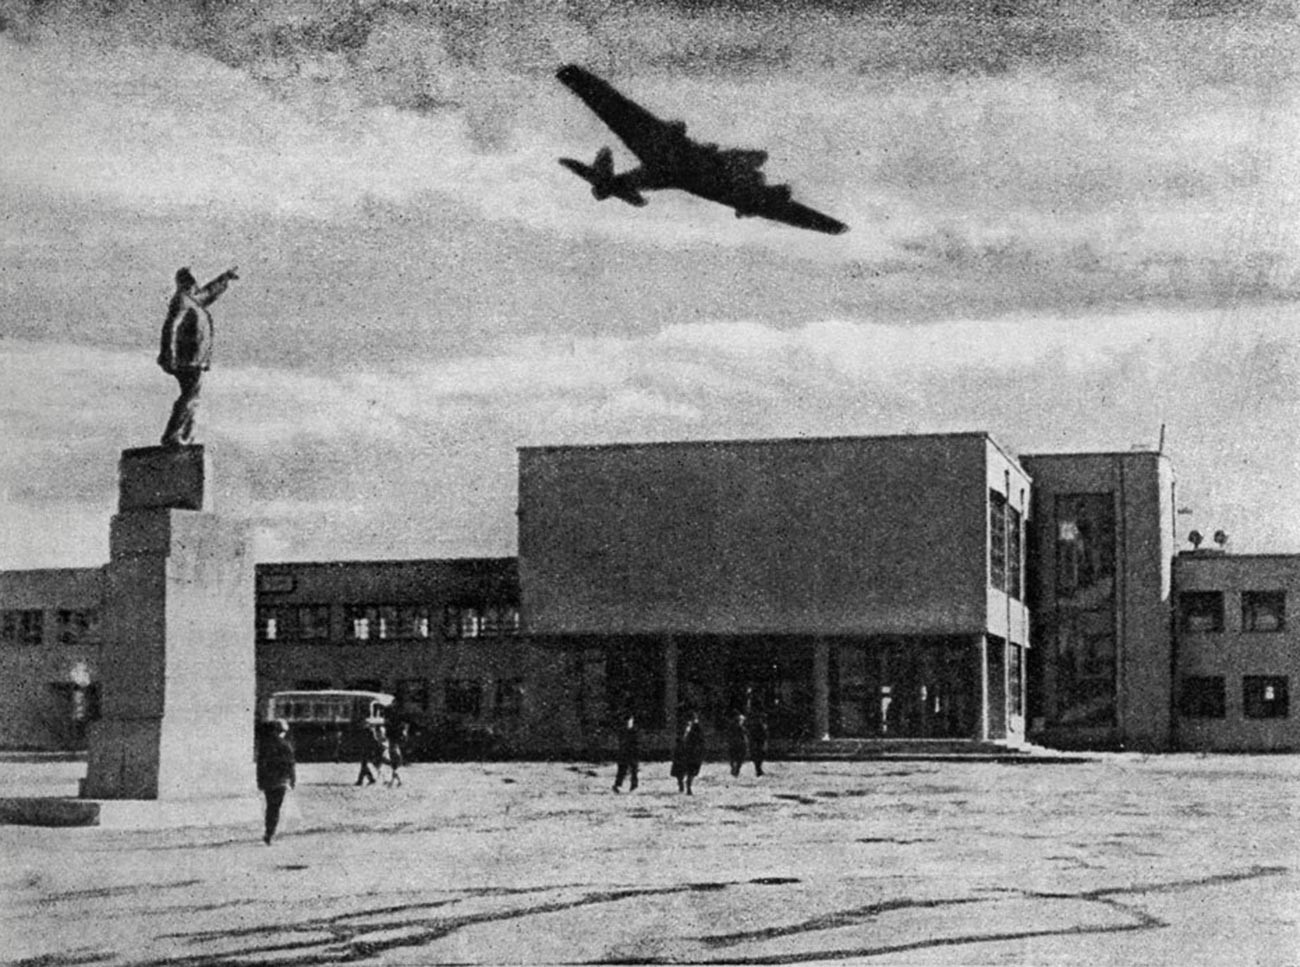 ANT-14 at the Khodynskoe Pole airport, 1934.